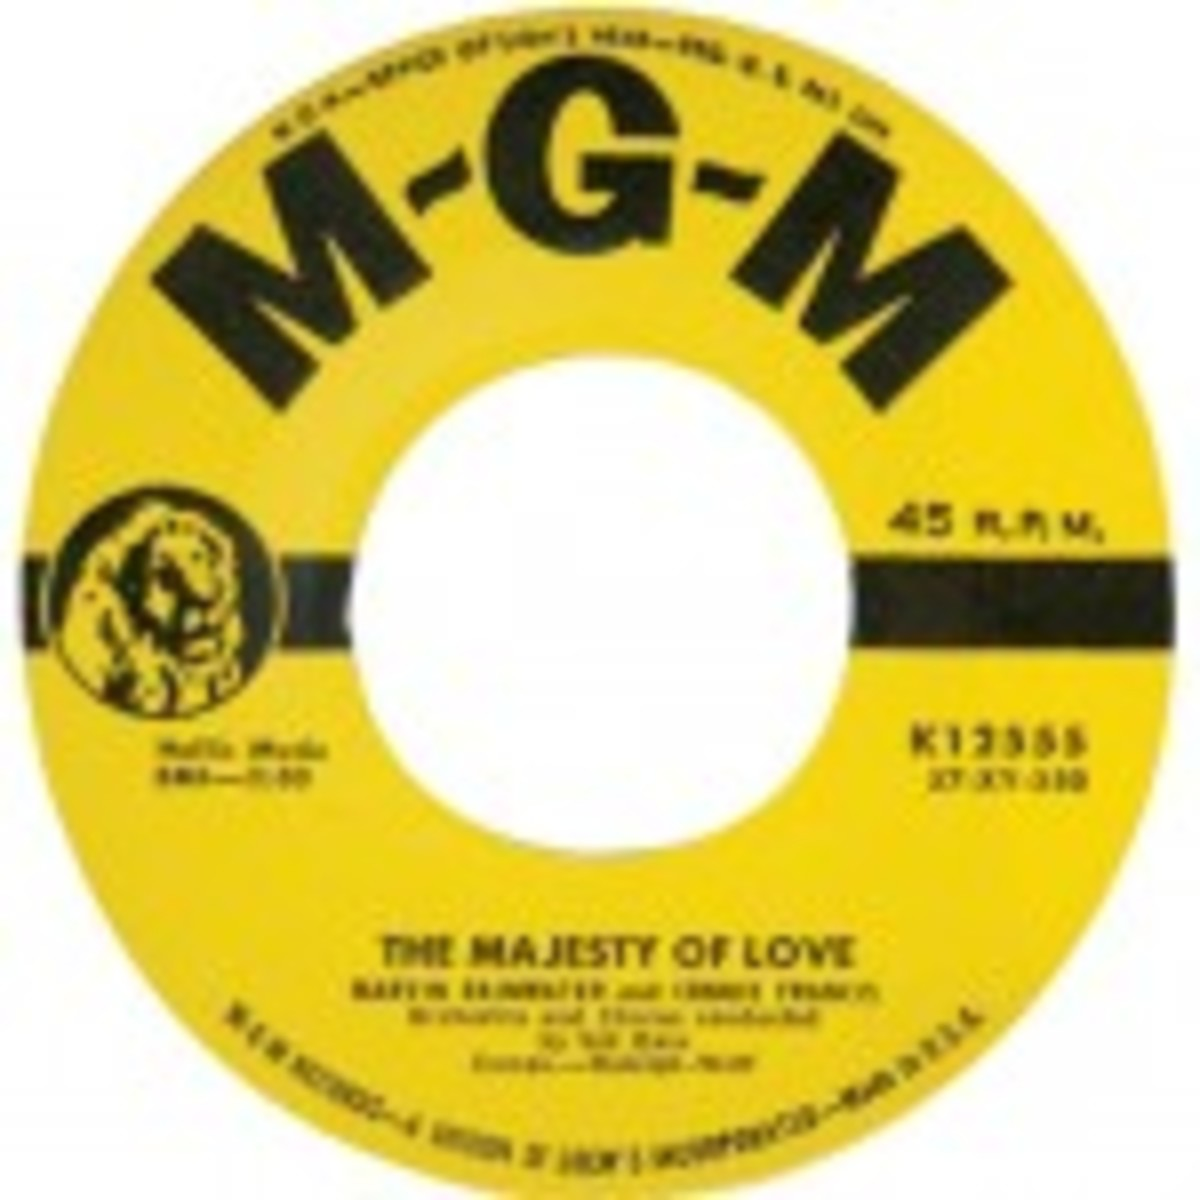 Connie Francis The Majesty of Love